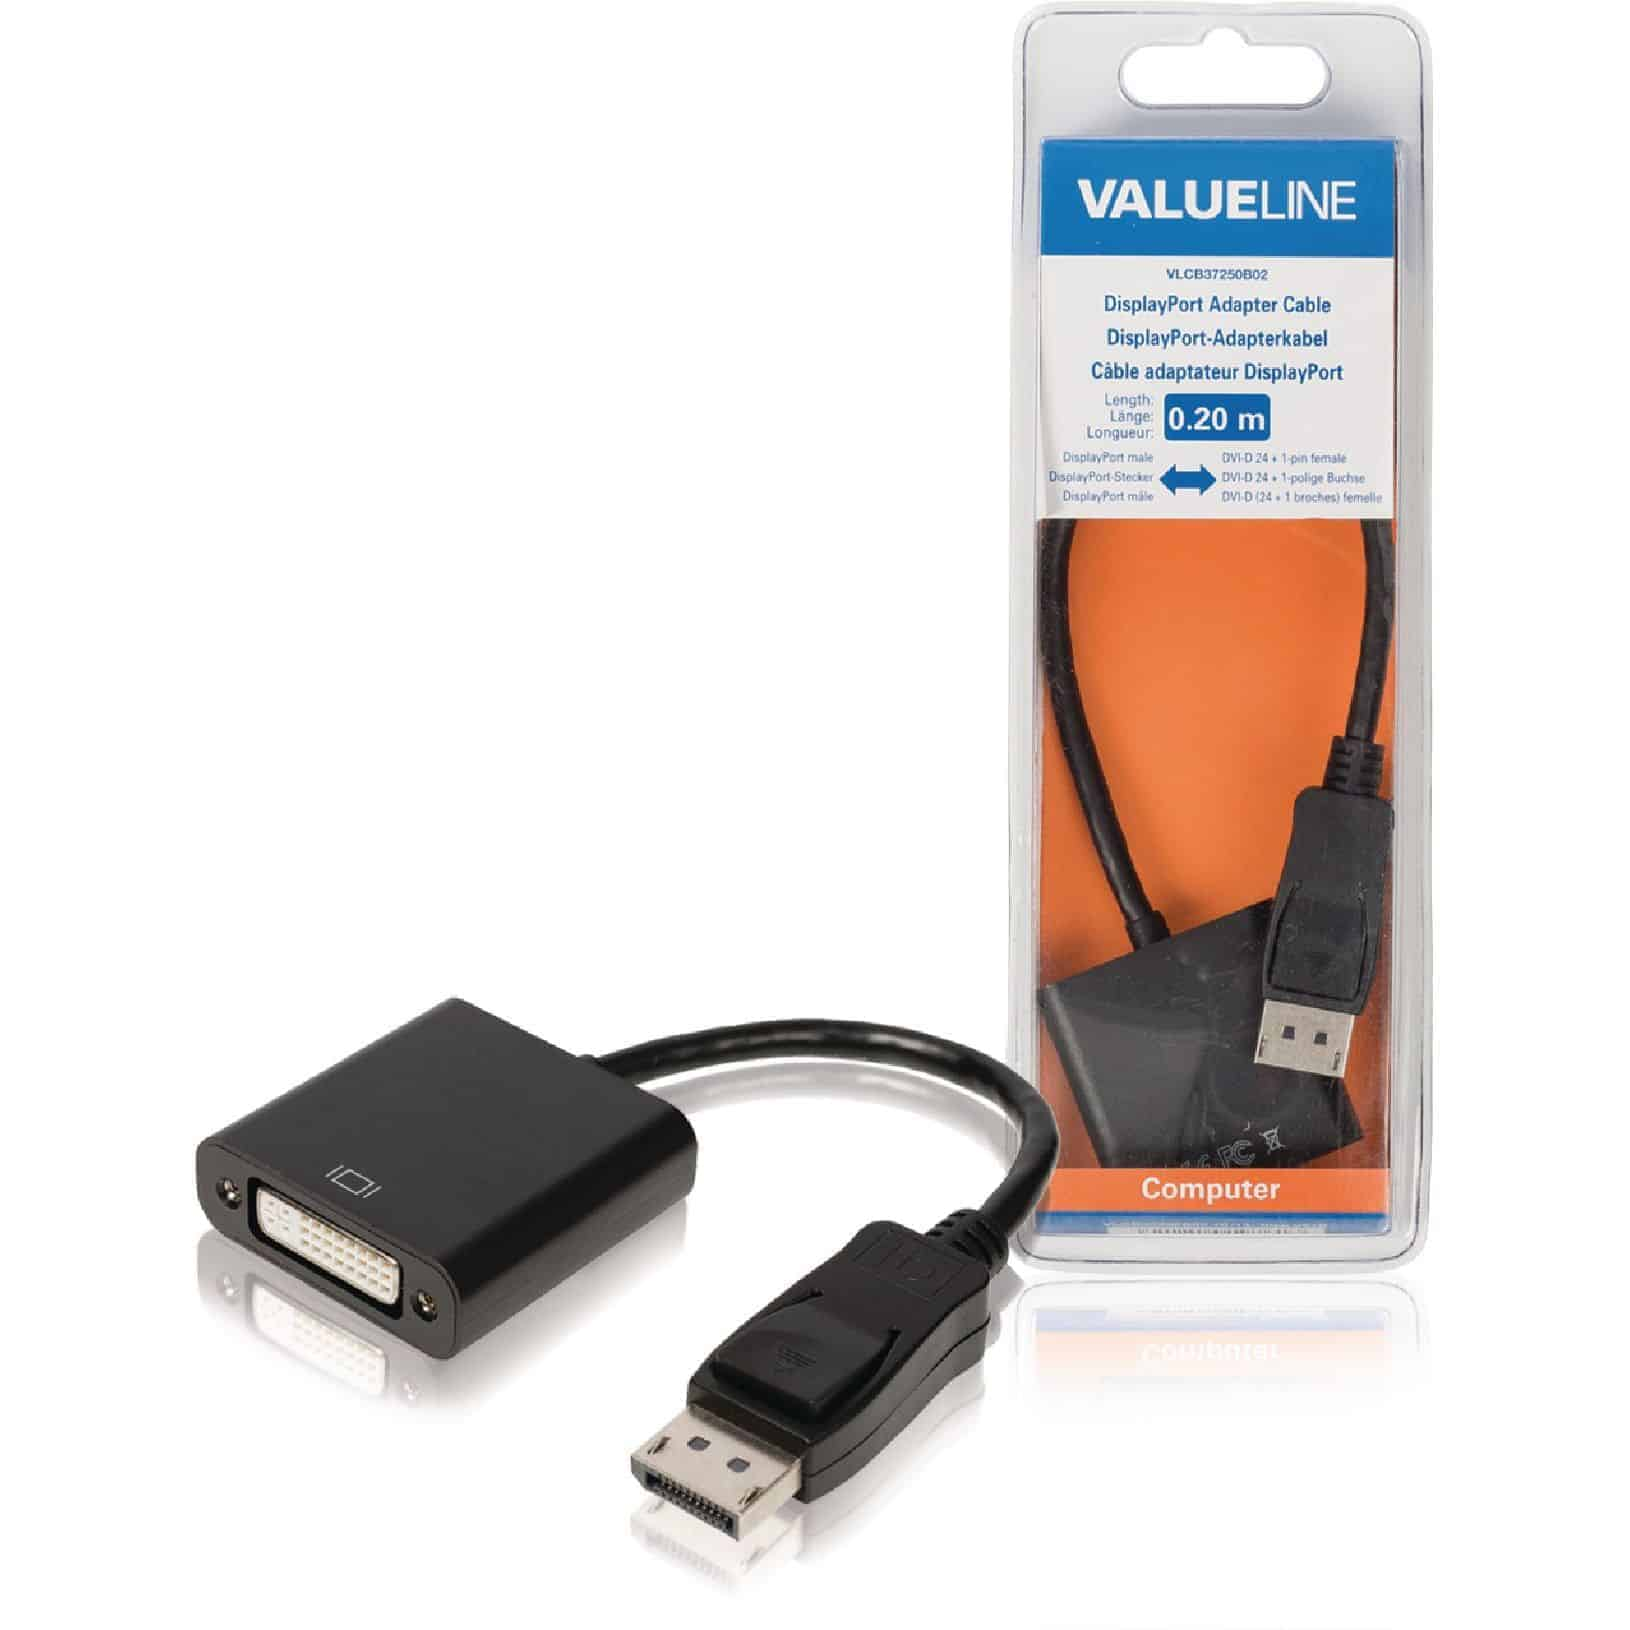 VALUELINE DISPLAYPORT UROS - DVI-D 24+1-PIN NAARAS 0